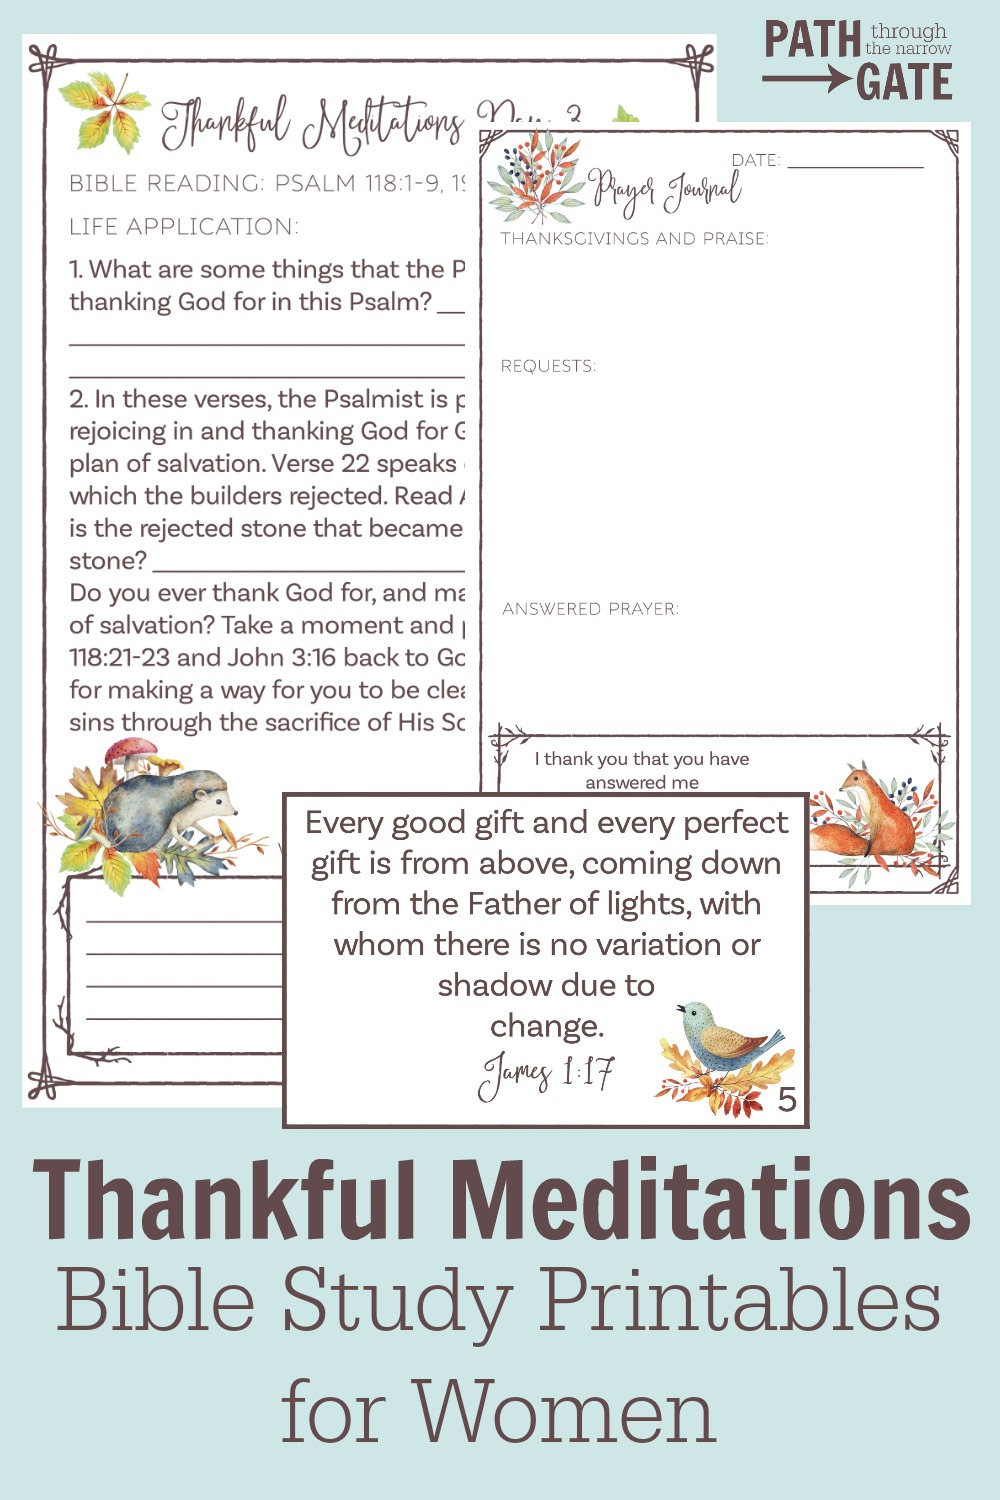 Do you long to pause and give God the worship and thanks He so richly deserves? This Thankful Meditations Bible Study Pack will help you do just that!